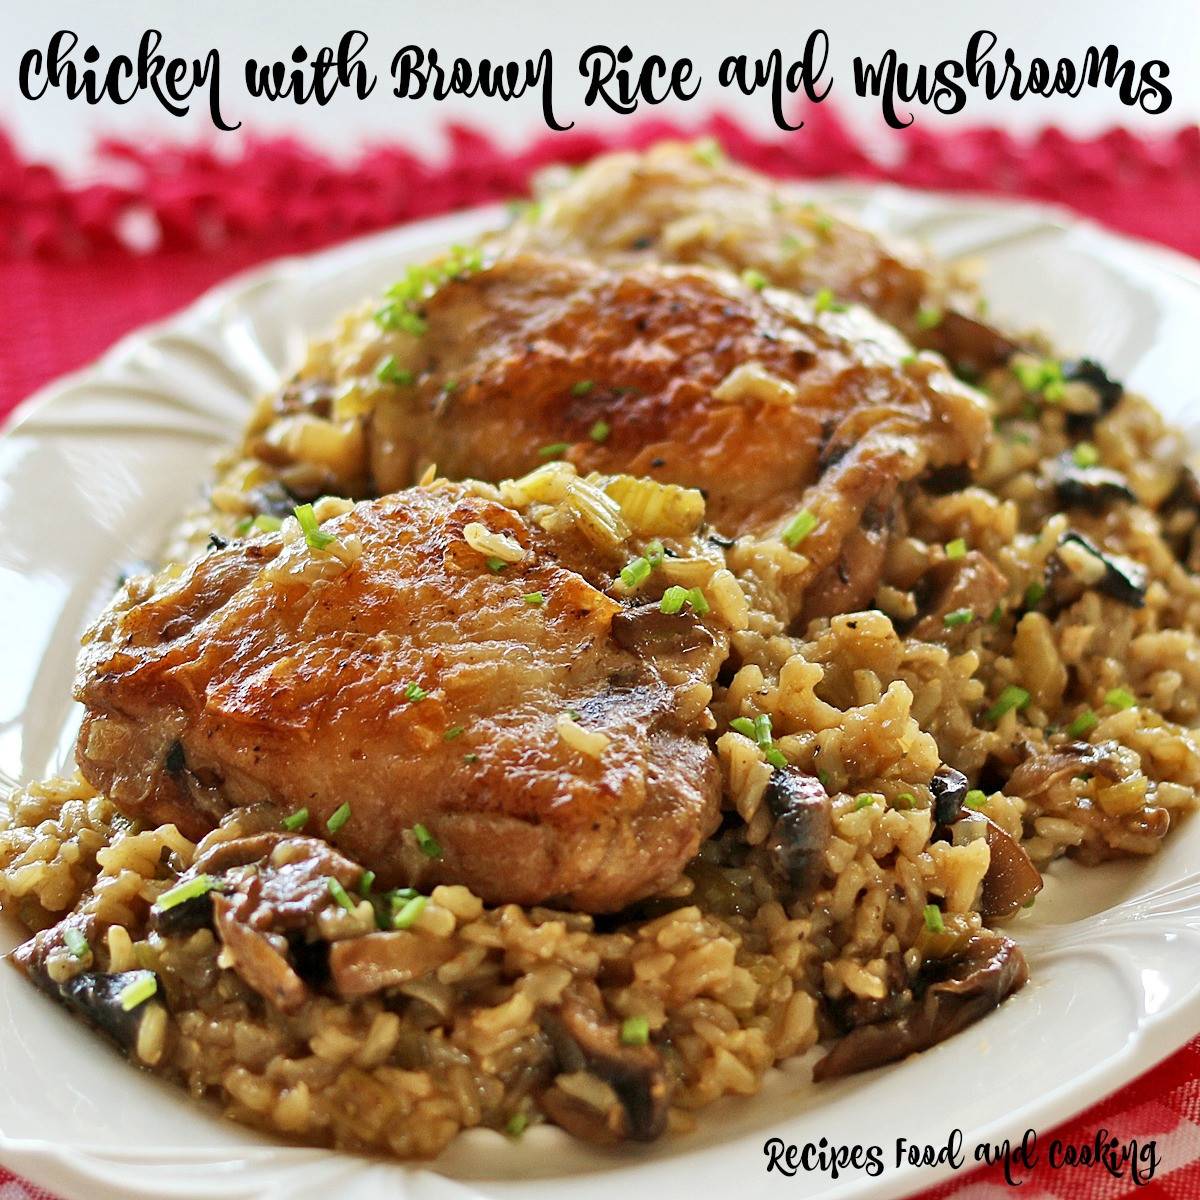 Chicken And Brown Rice  Chicken with Brown Rice and Mushrooms